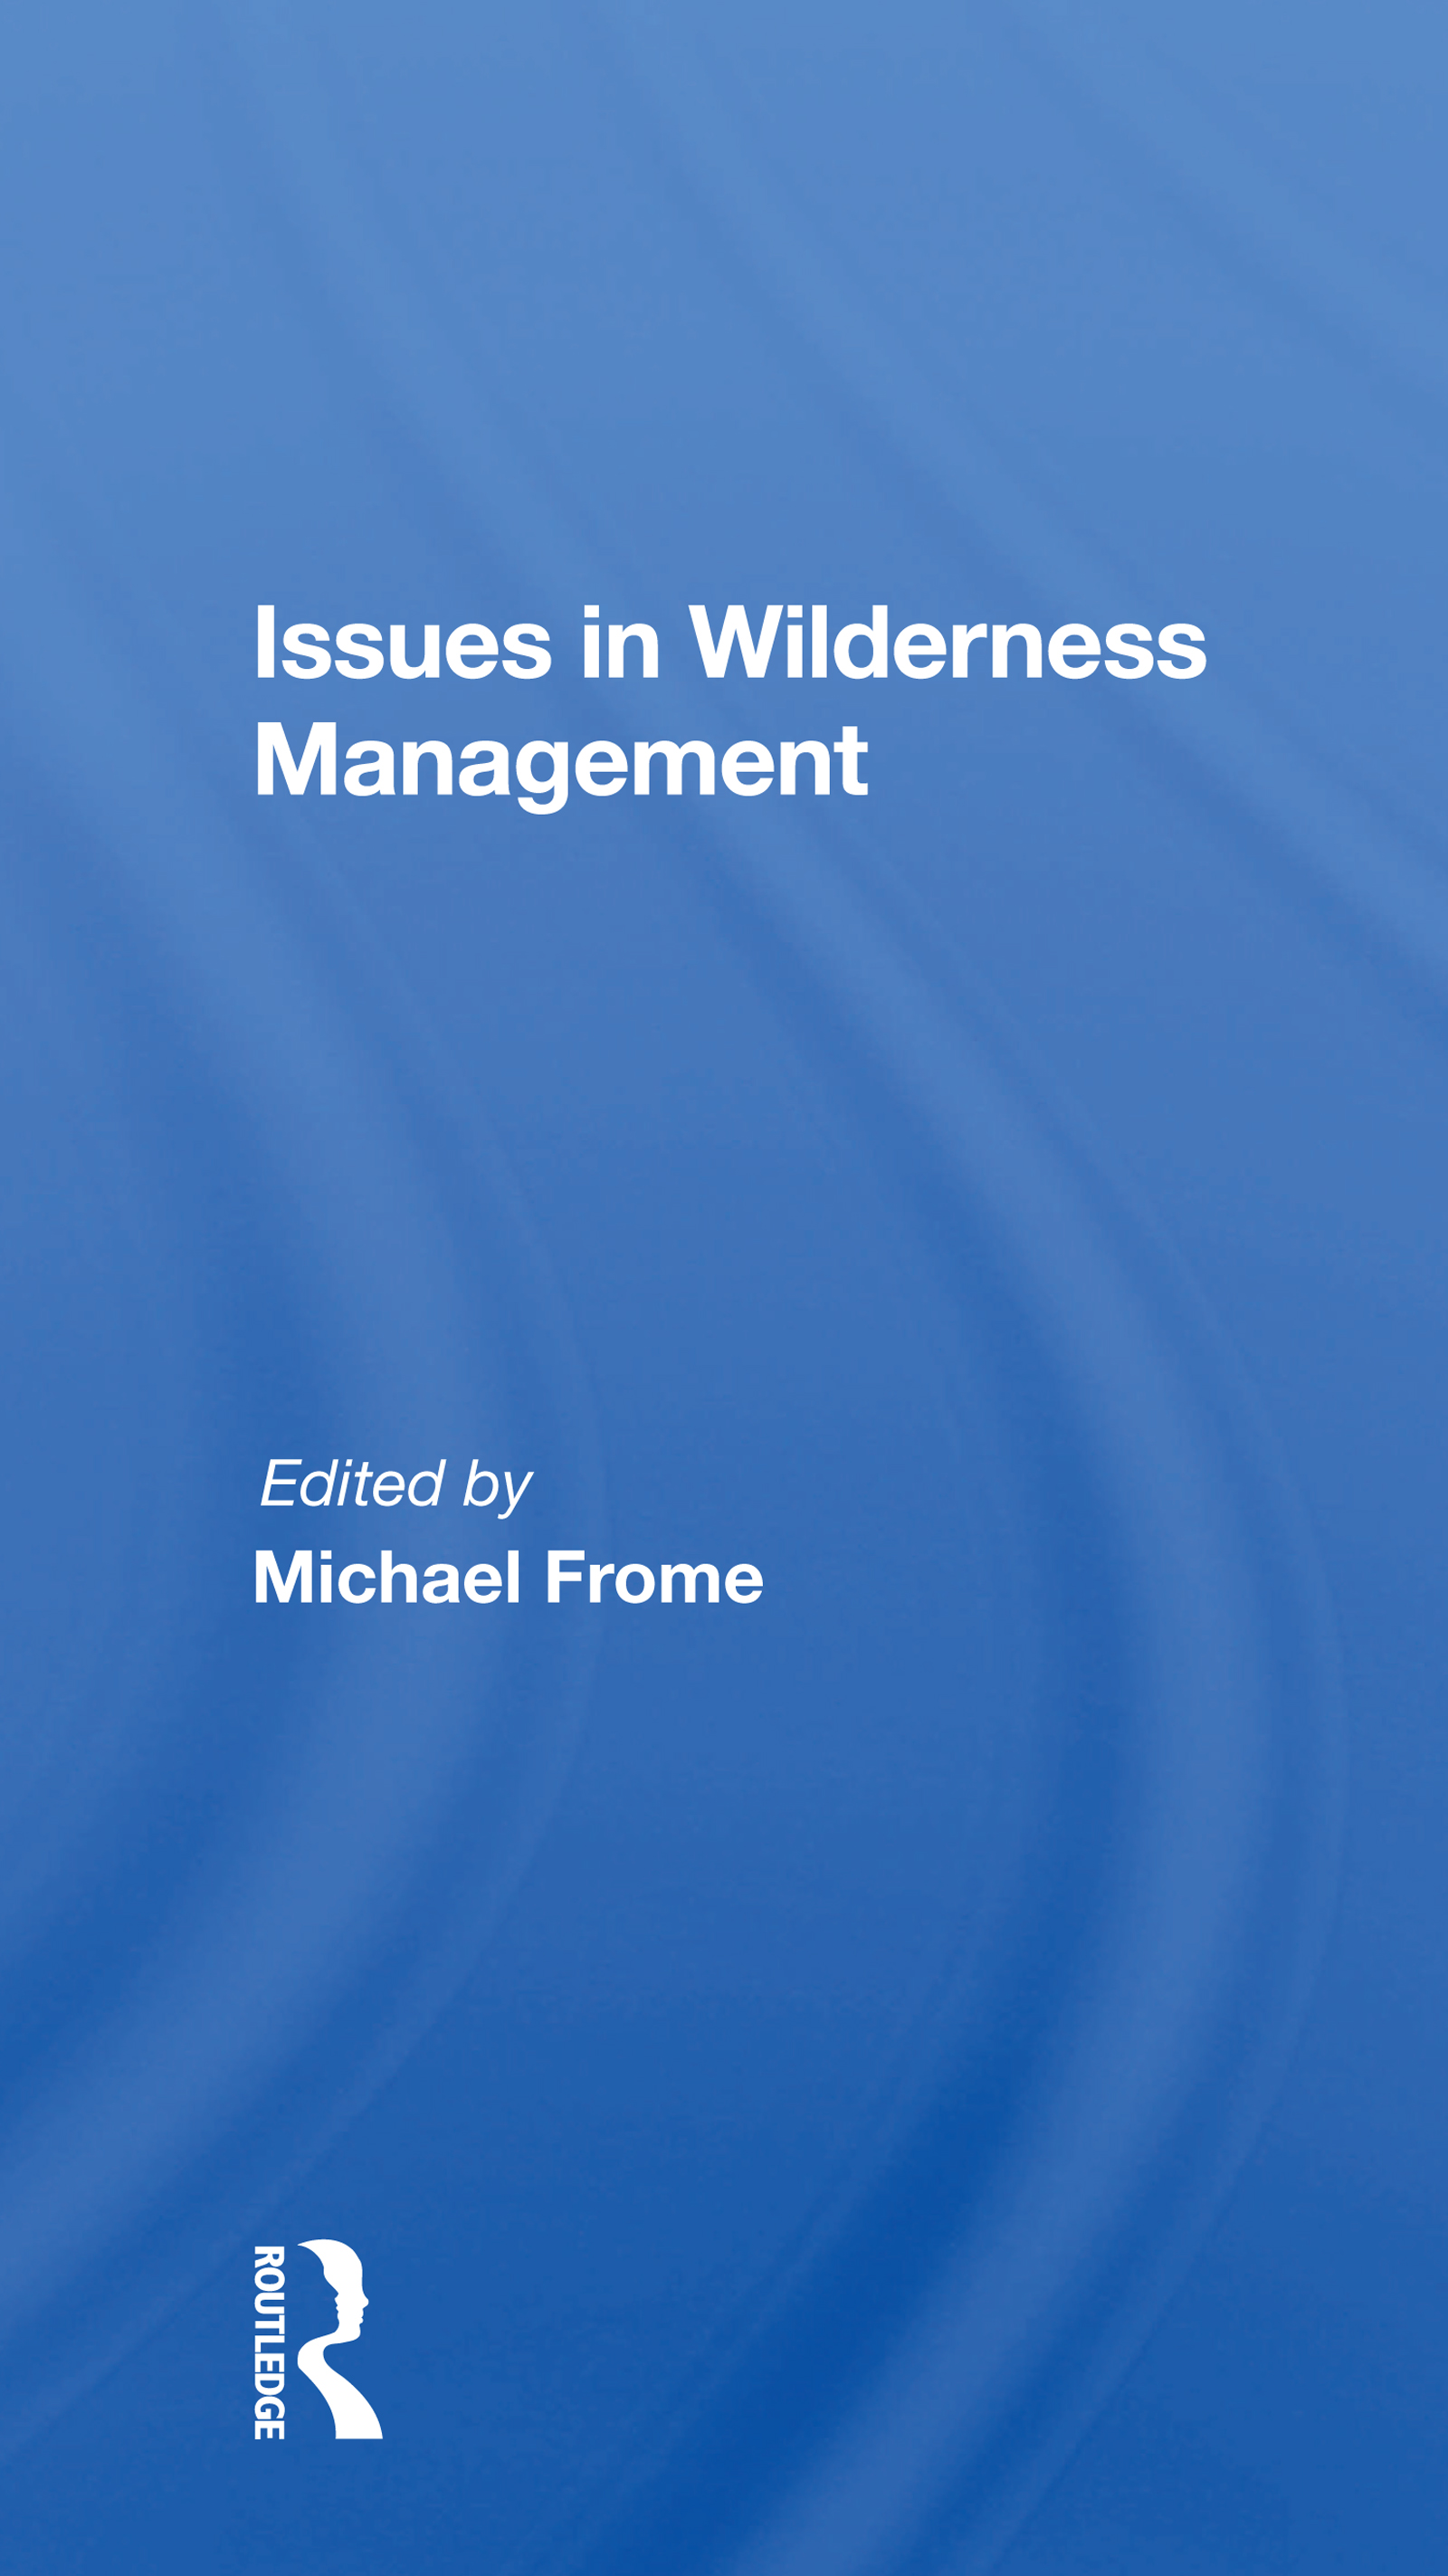 Issues in Wilderness Management